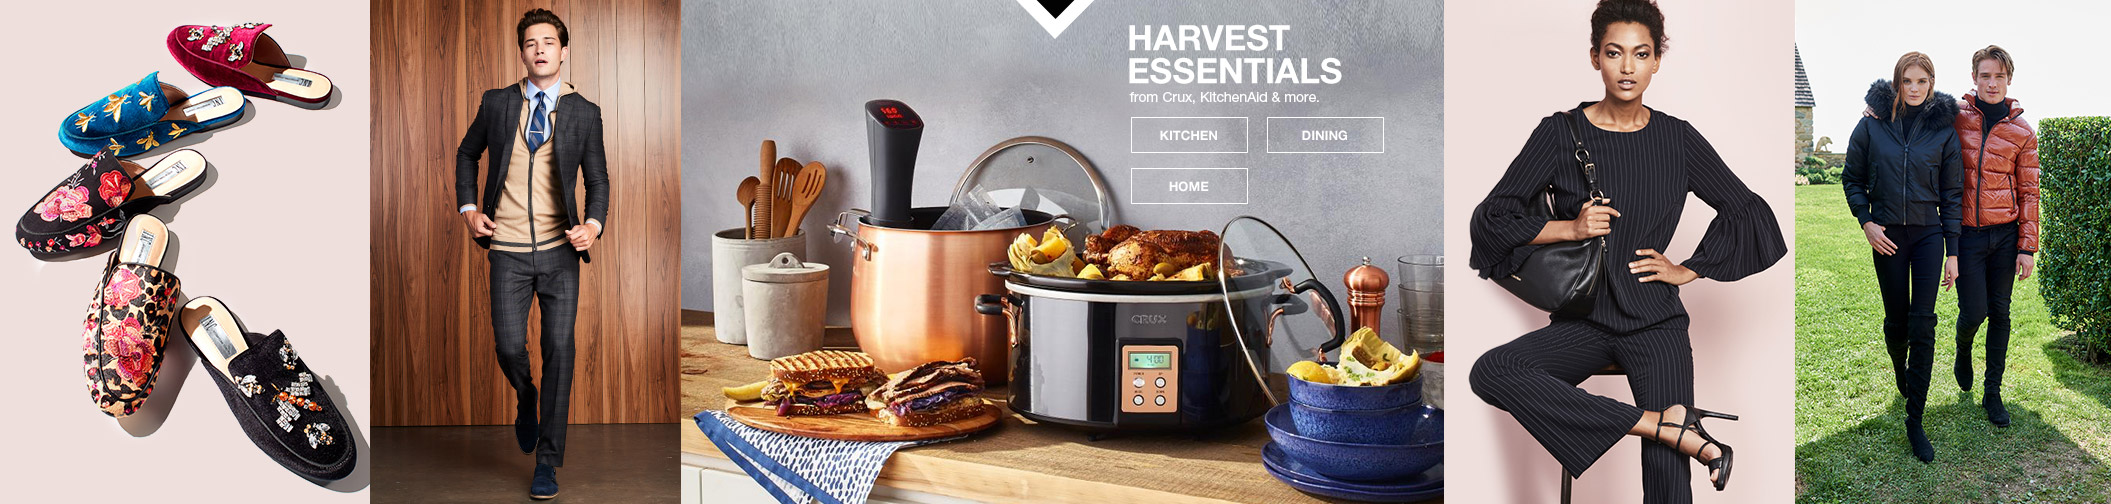 harvest essentials from crux, kitchenAid and more.